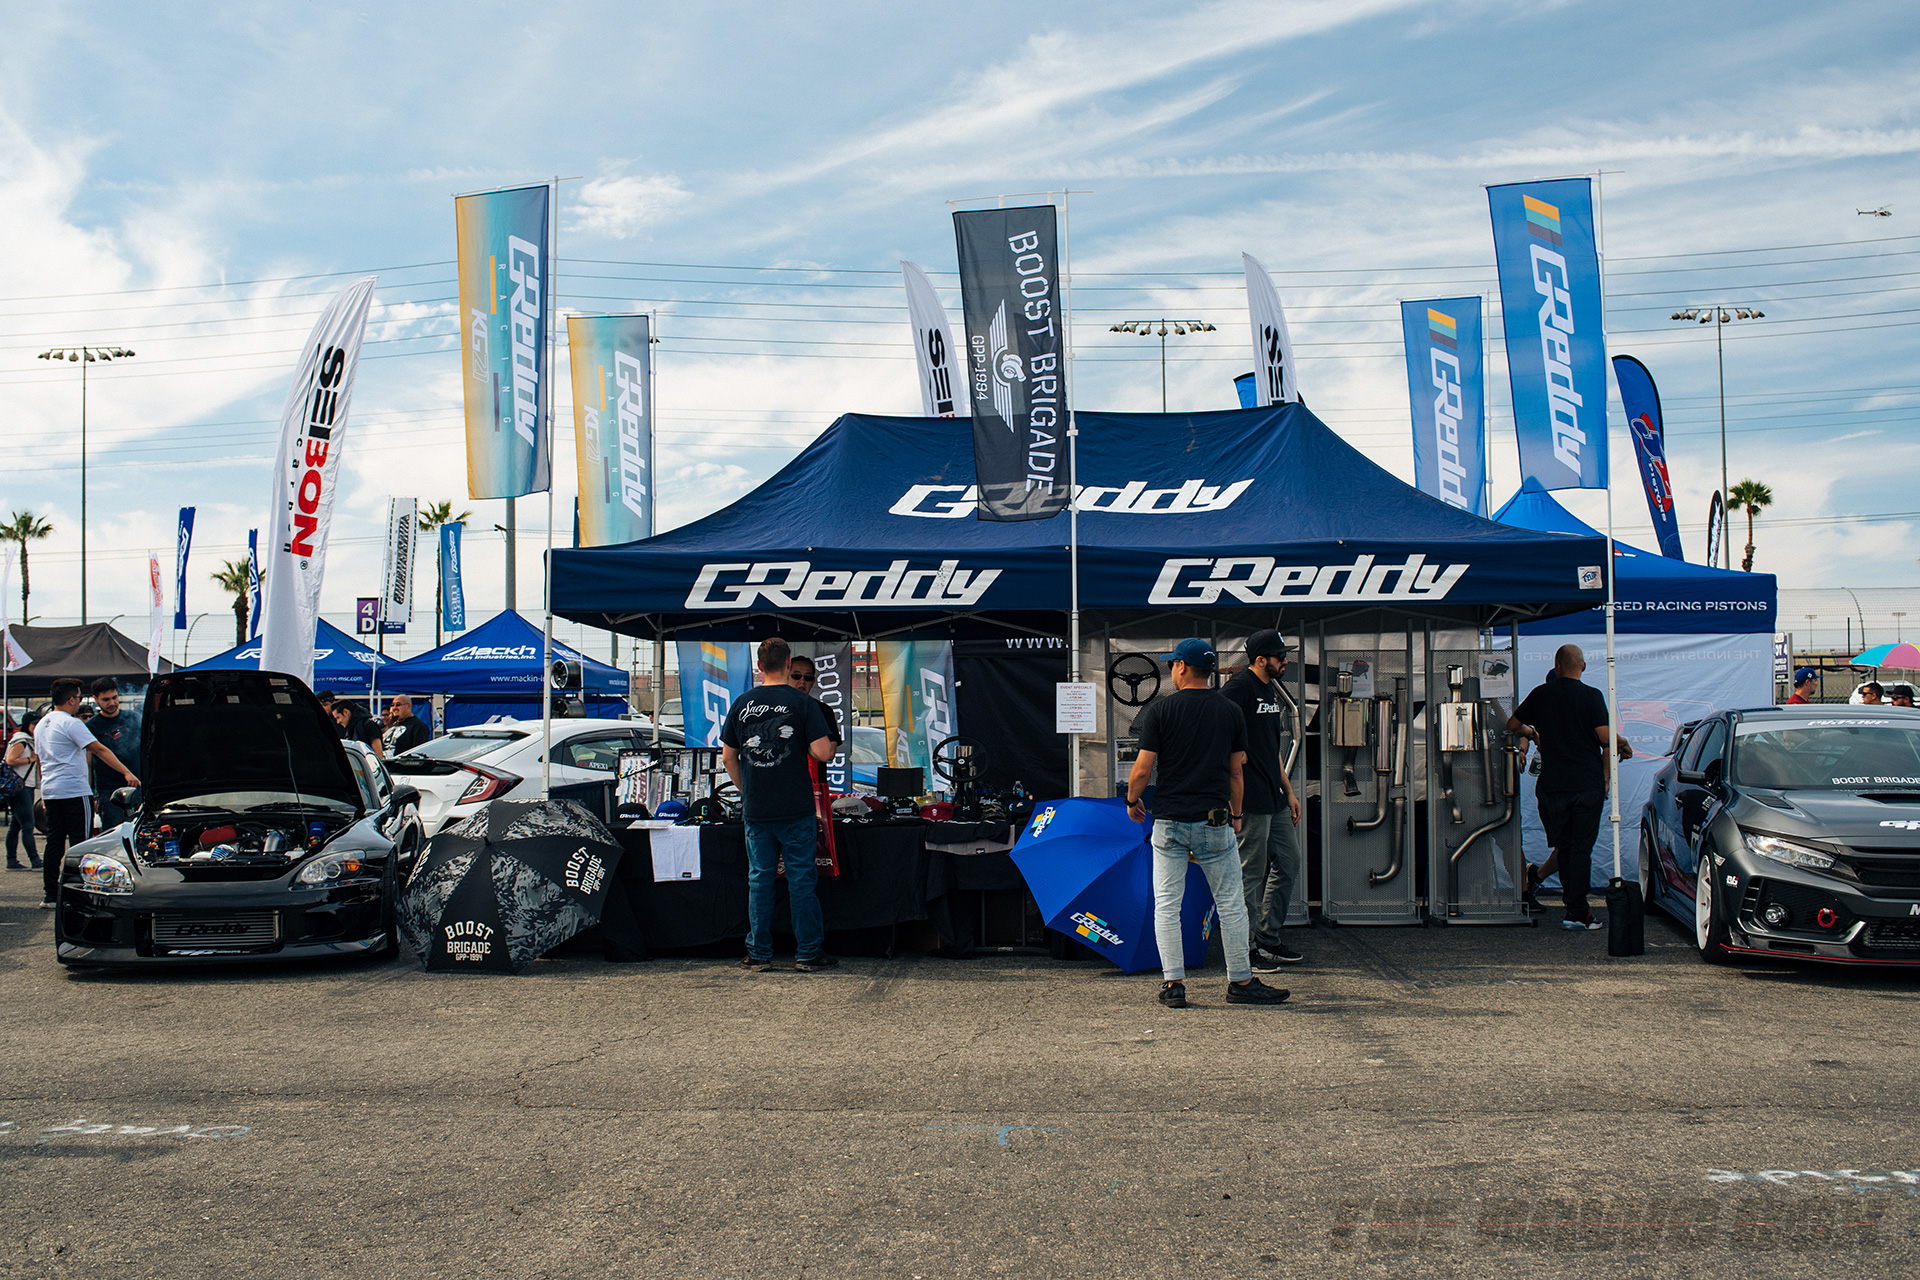 14th Annual Eibach Honda Meet, GReddy Booth